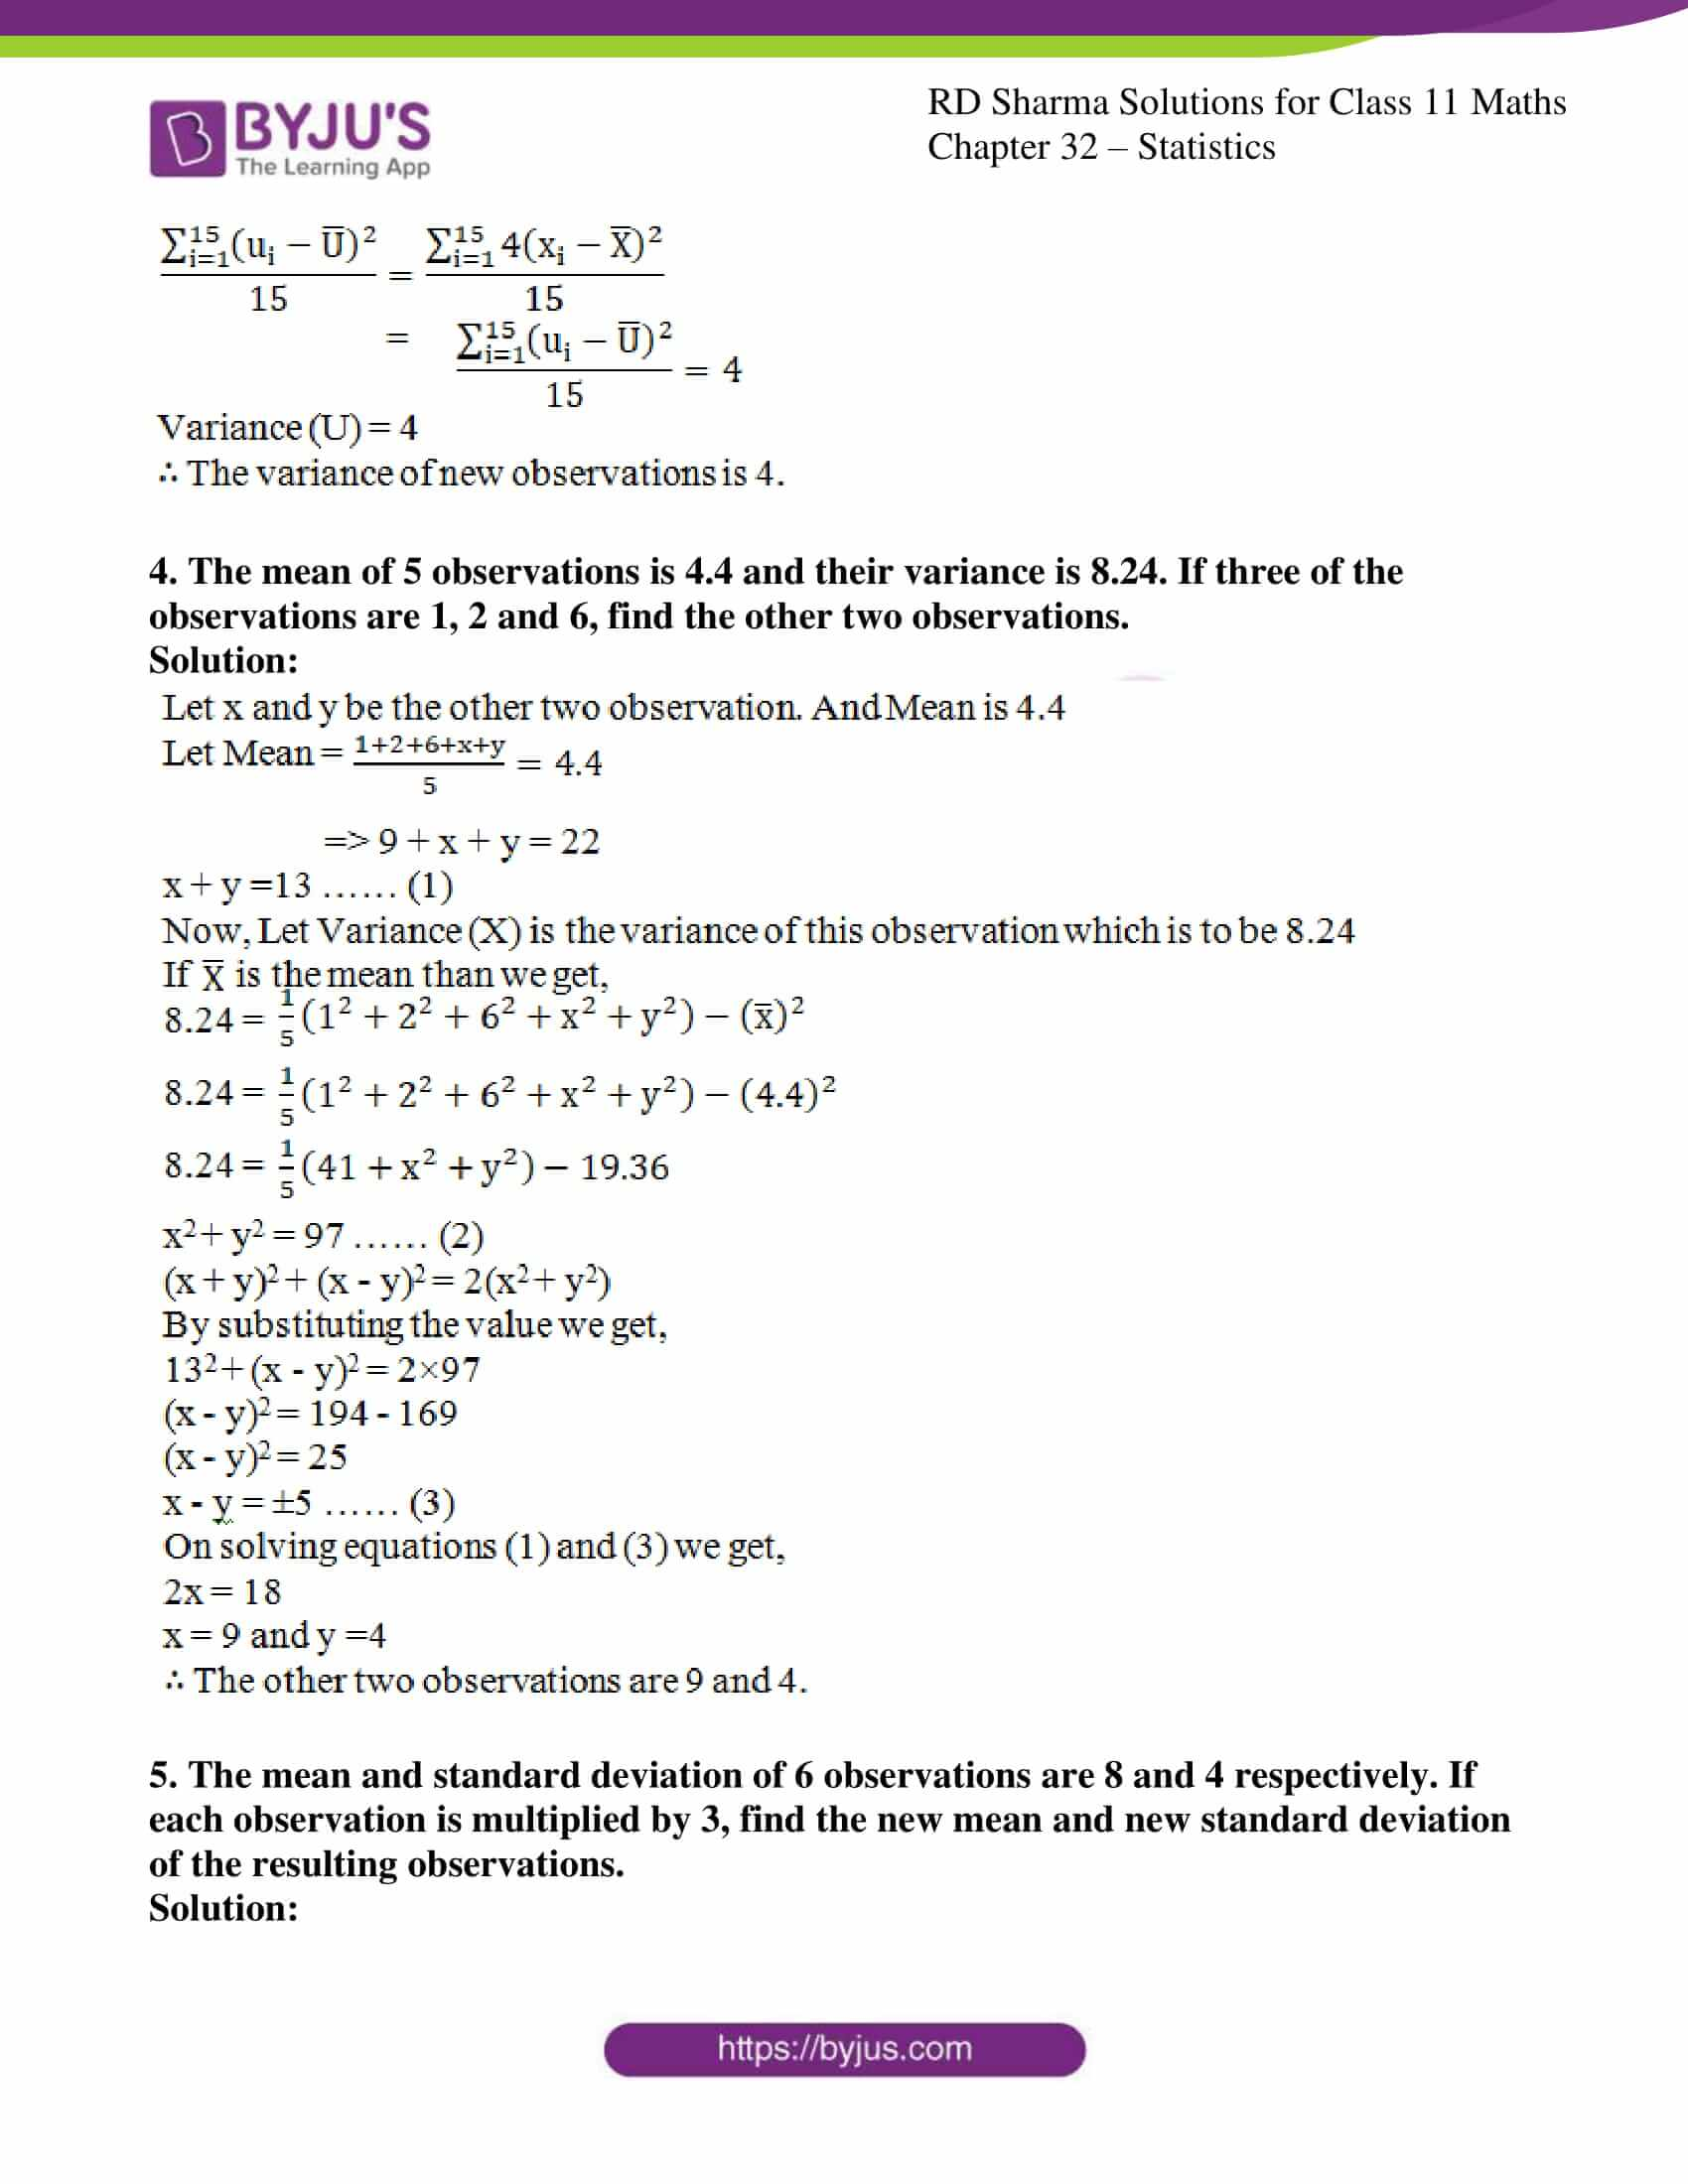 rd sharma class 11 maths chapter 32 ex 4 4